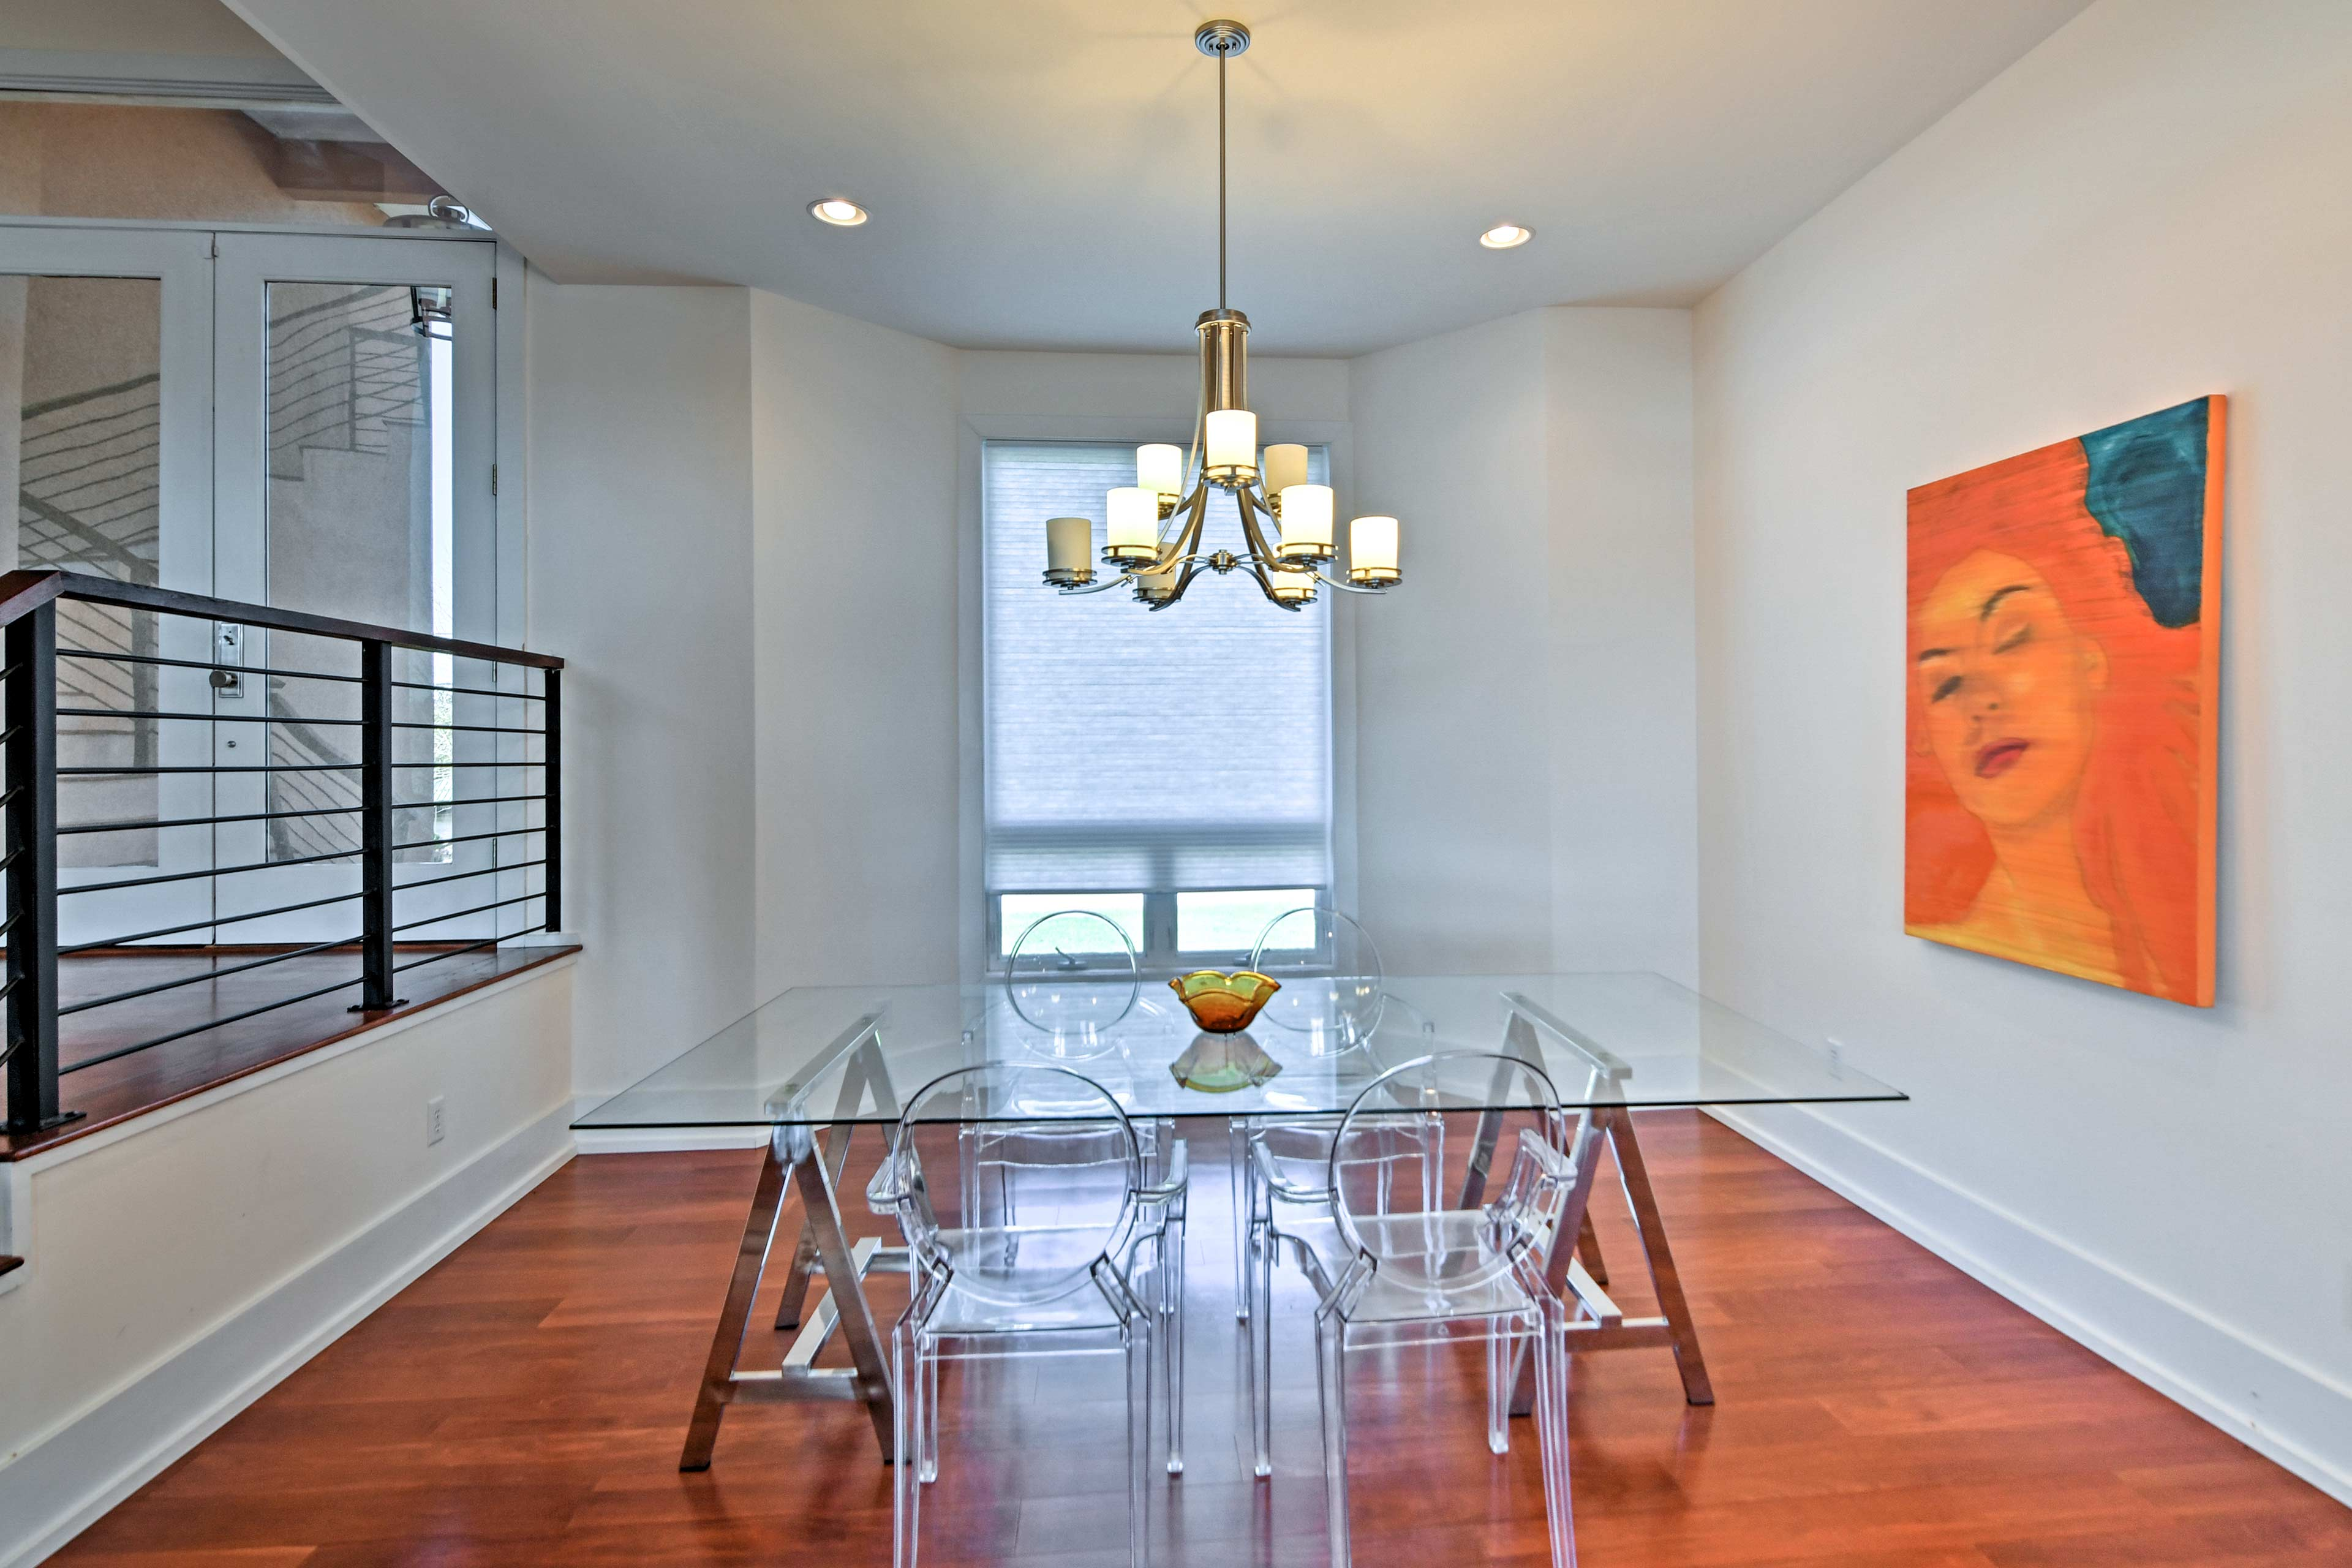 Share home-cooked meals at the translucent dining table.